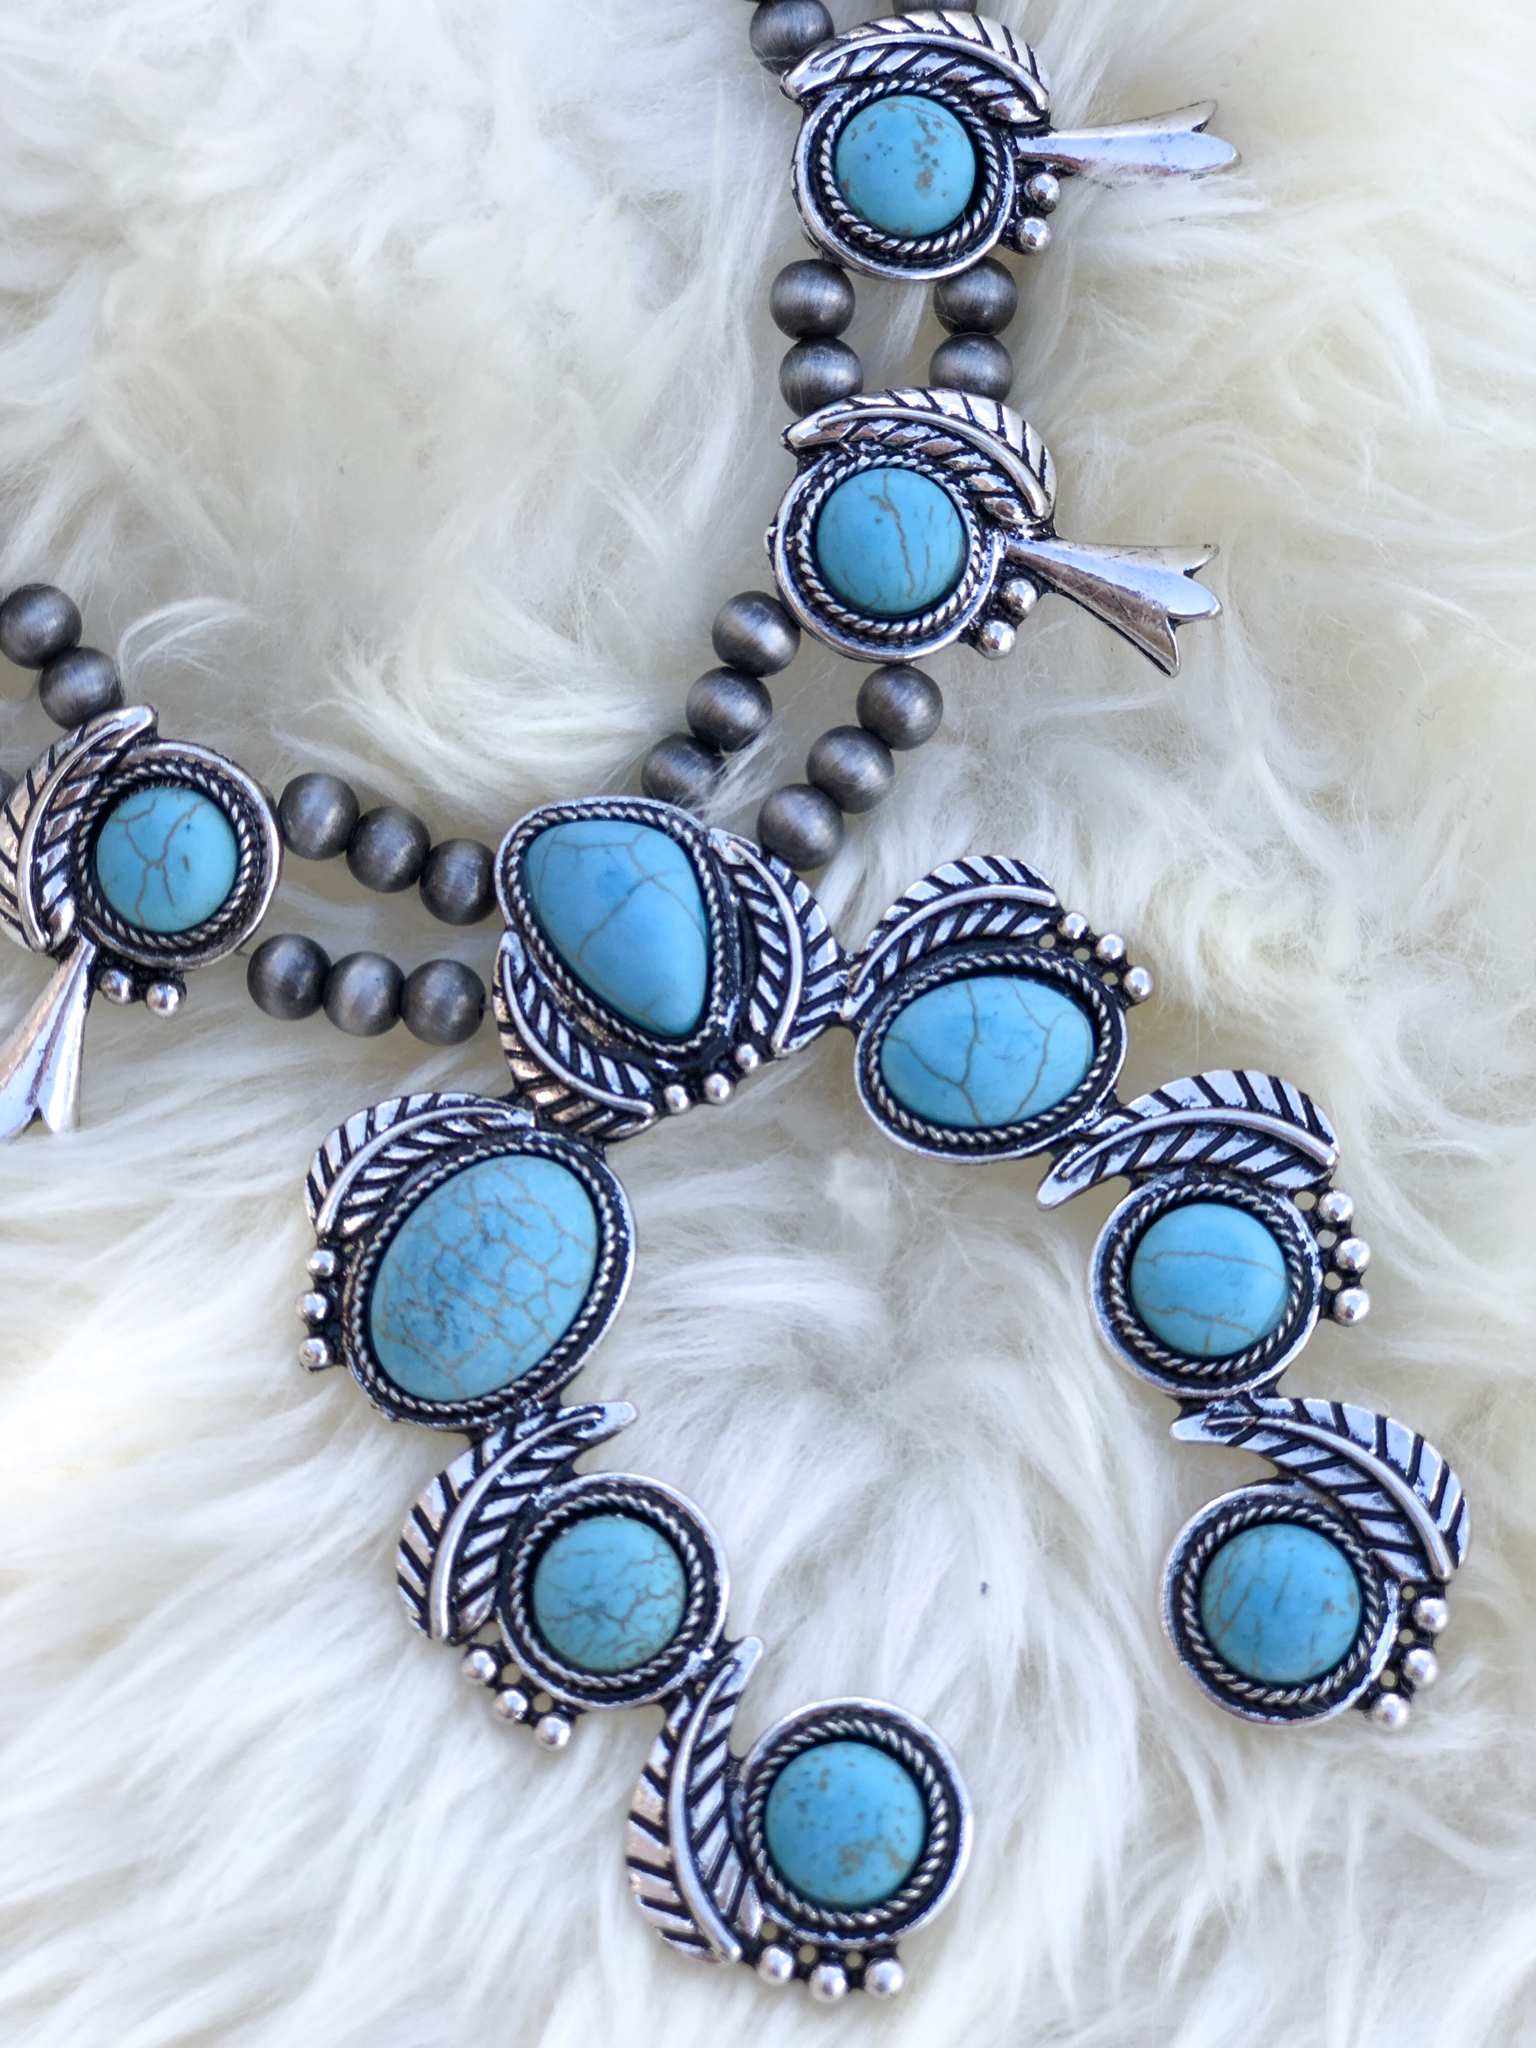 The Spur Squash and necklace set- Turquoise